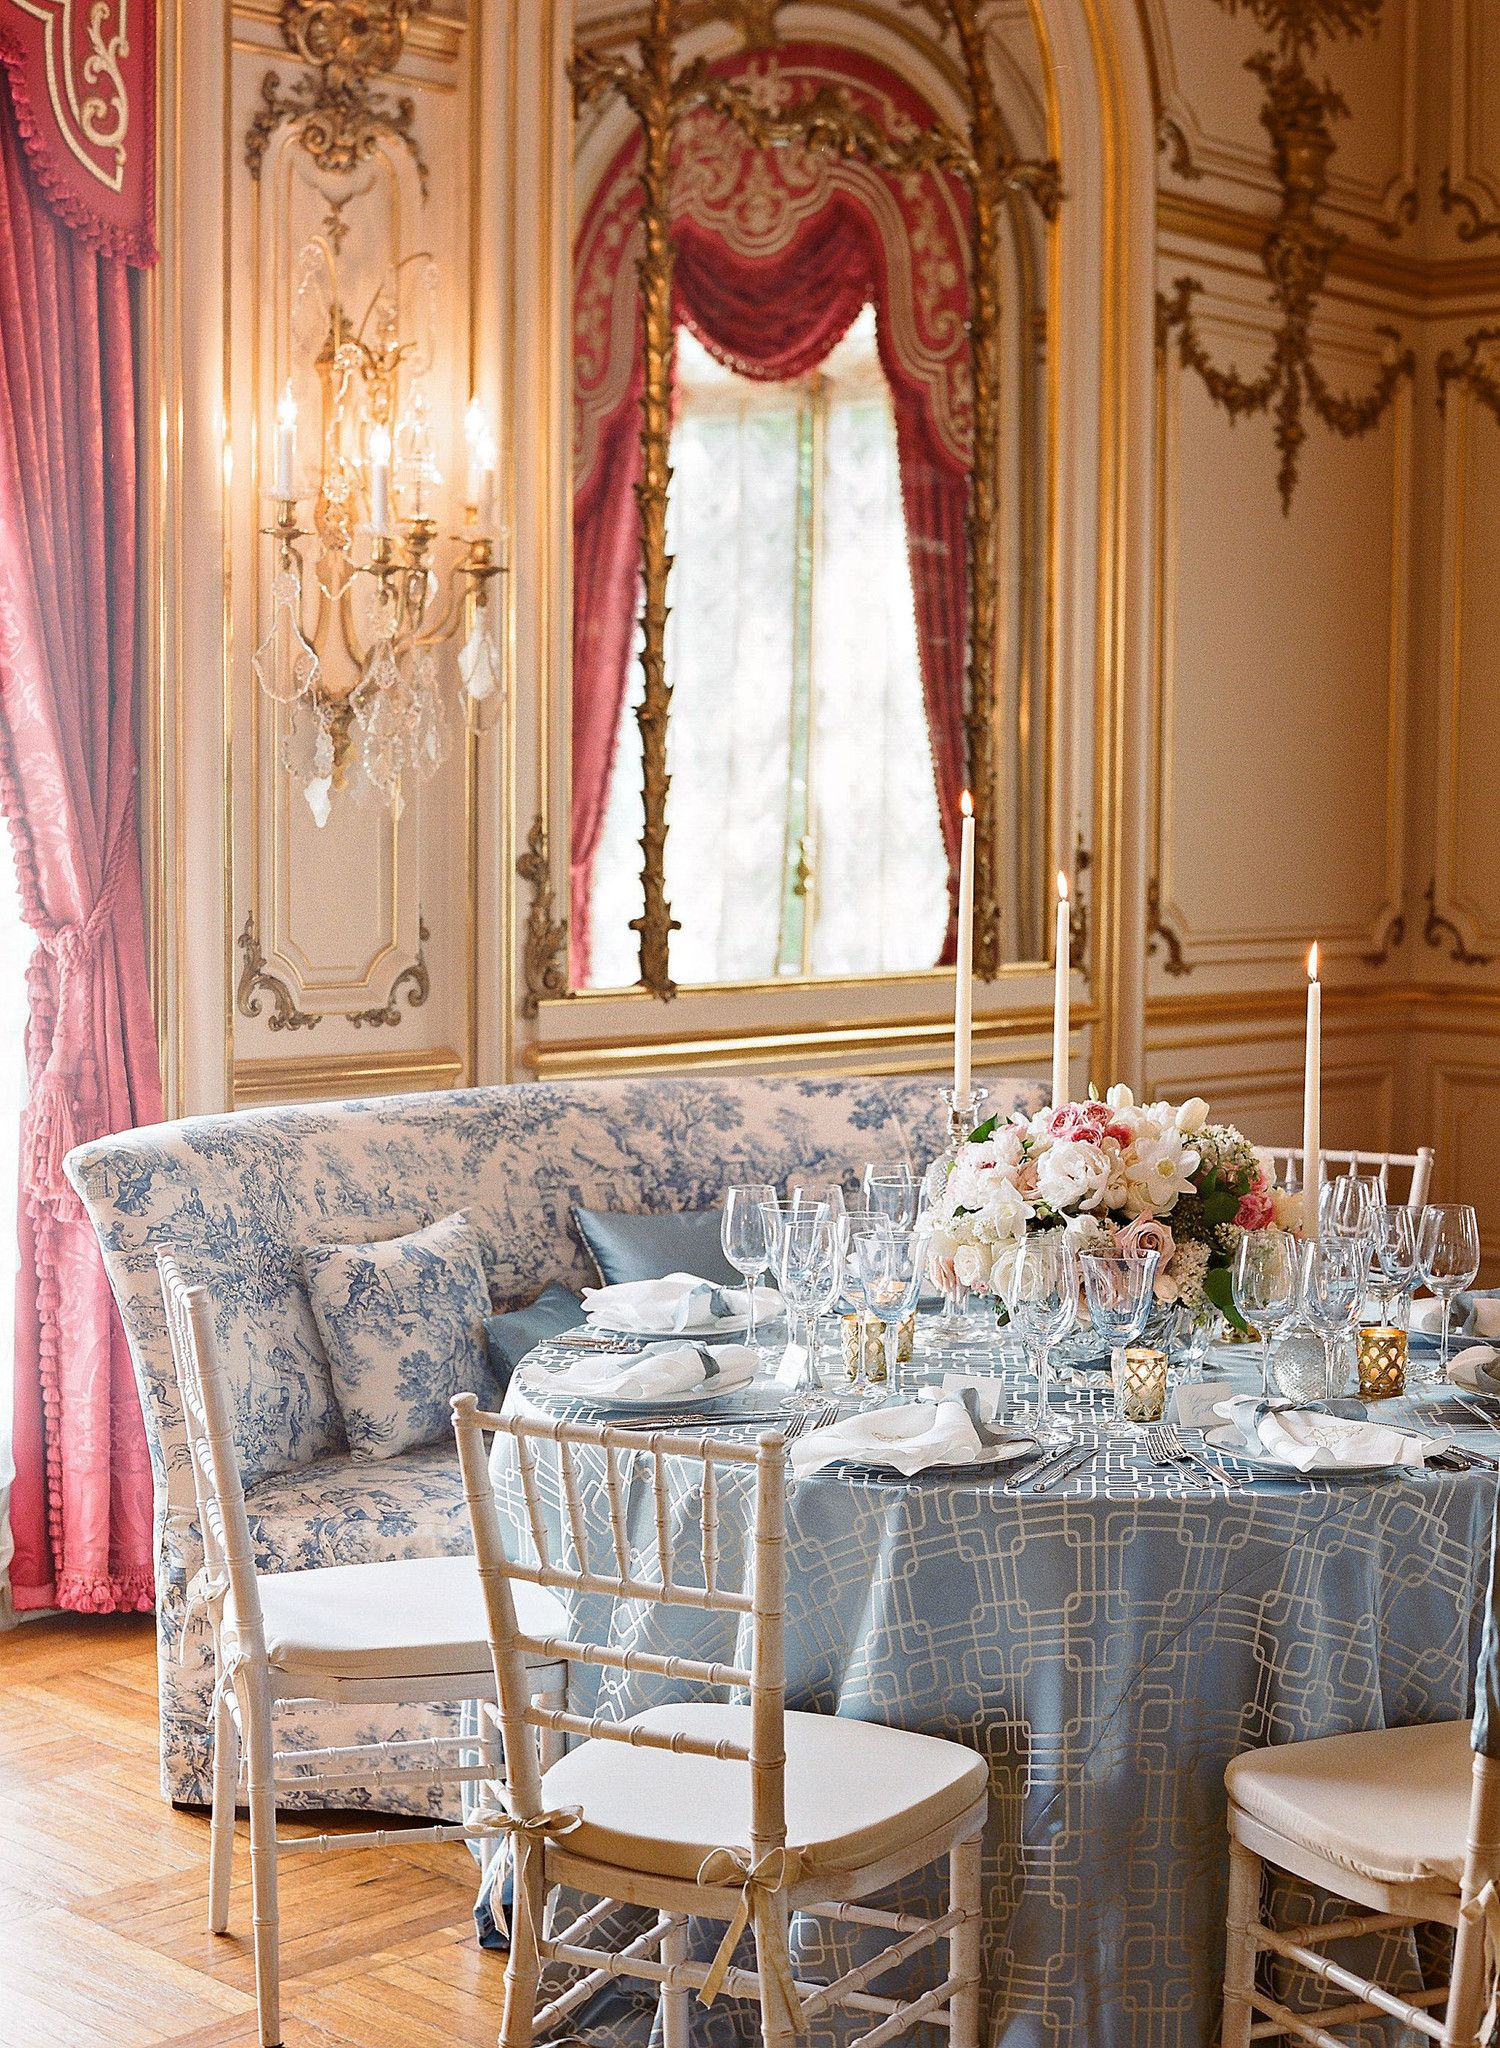 Four Custom Banquettes, Slipcovered In Toile, With Slate Blue Dupioni Silk  Pillows